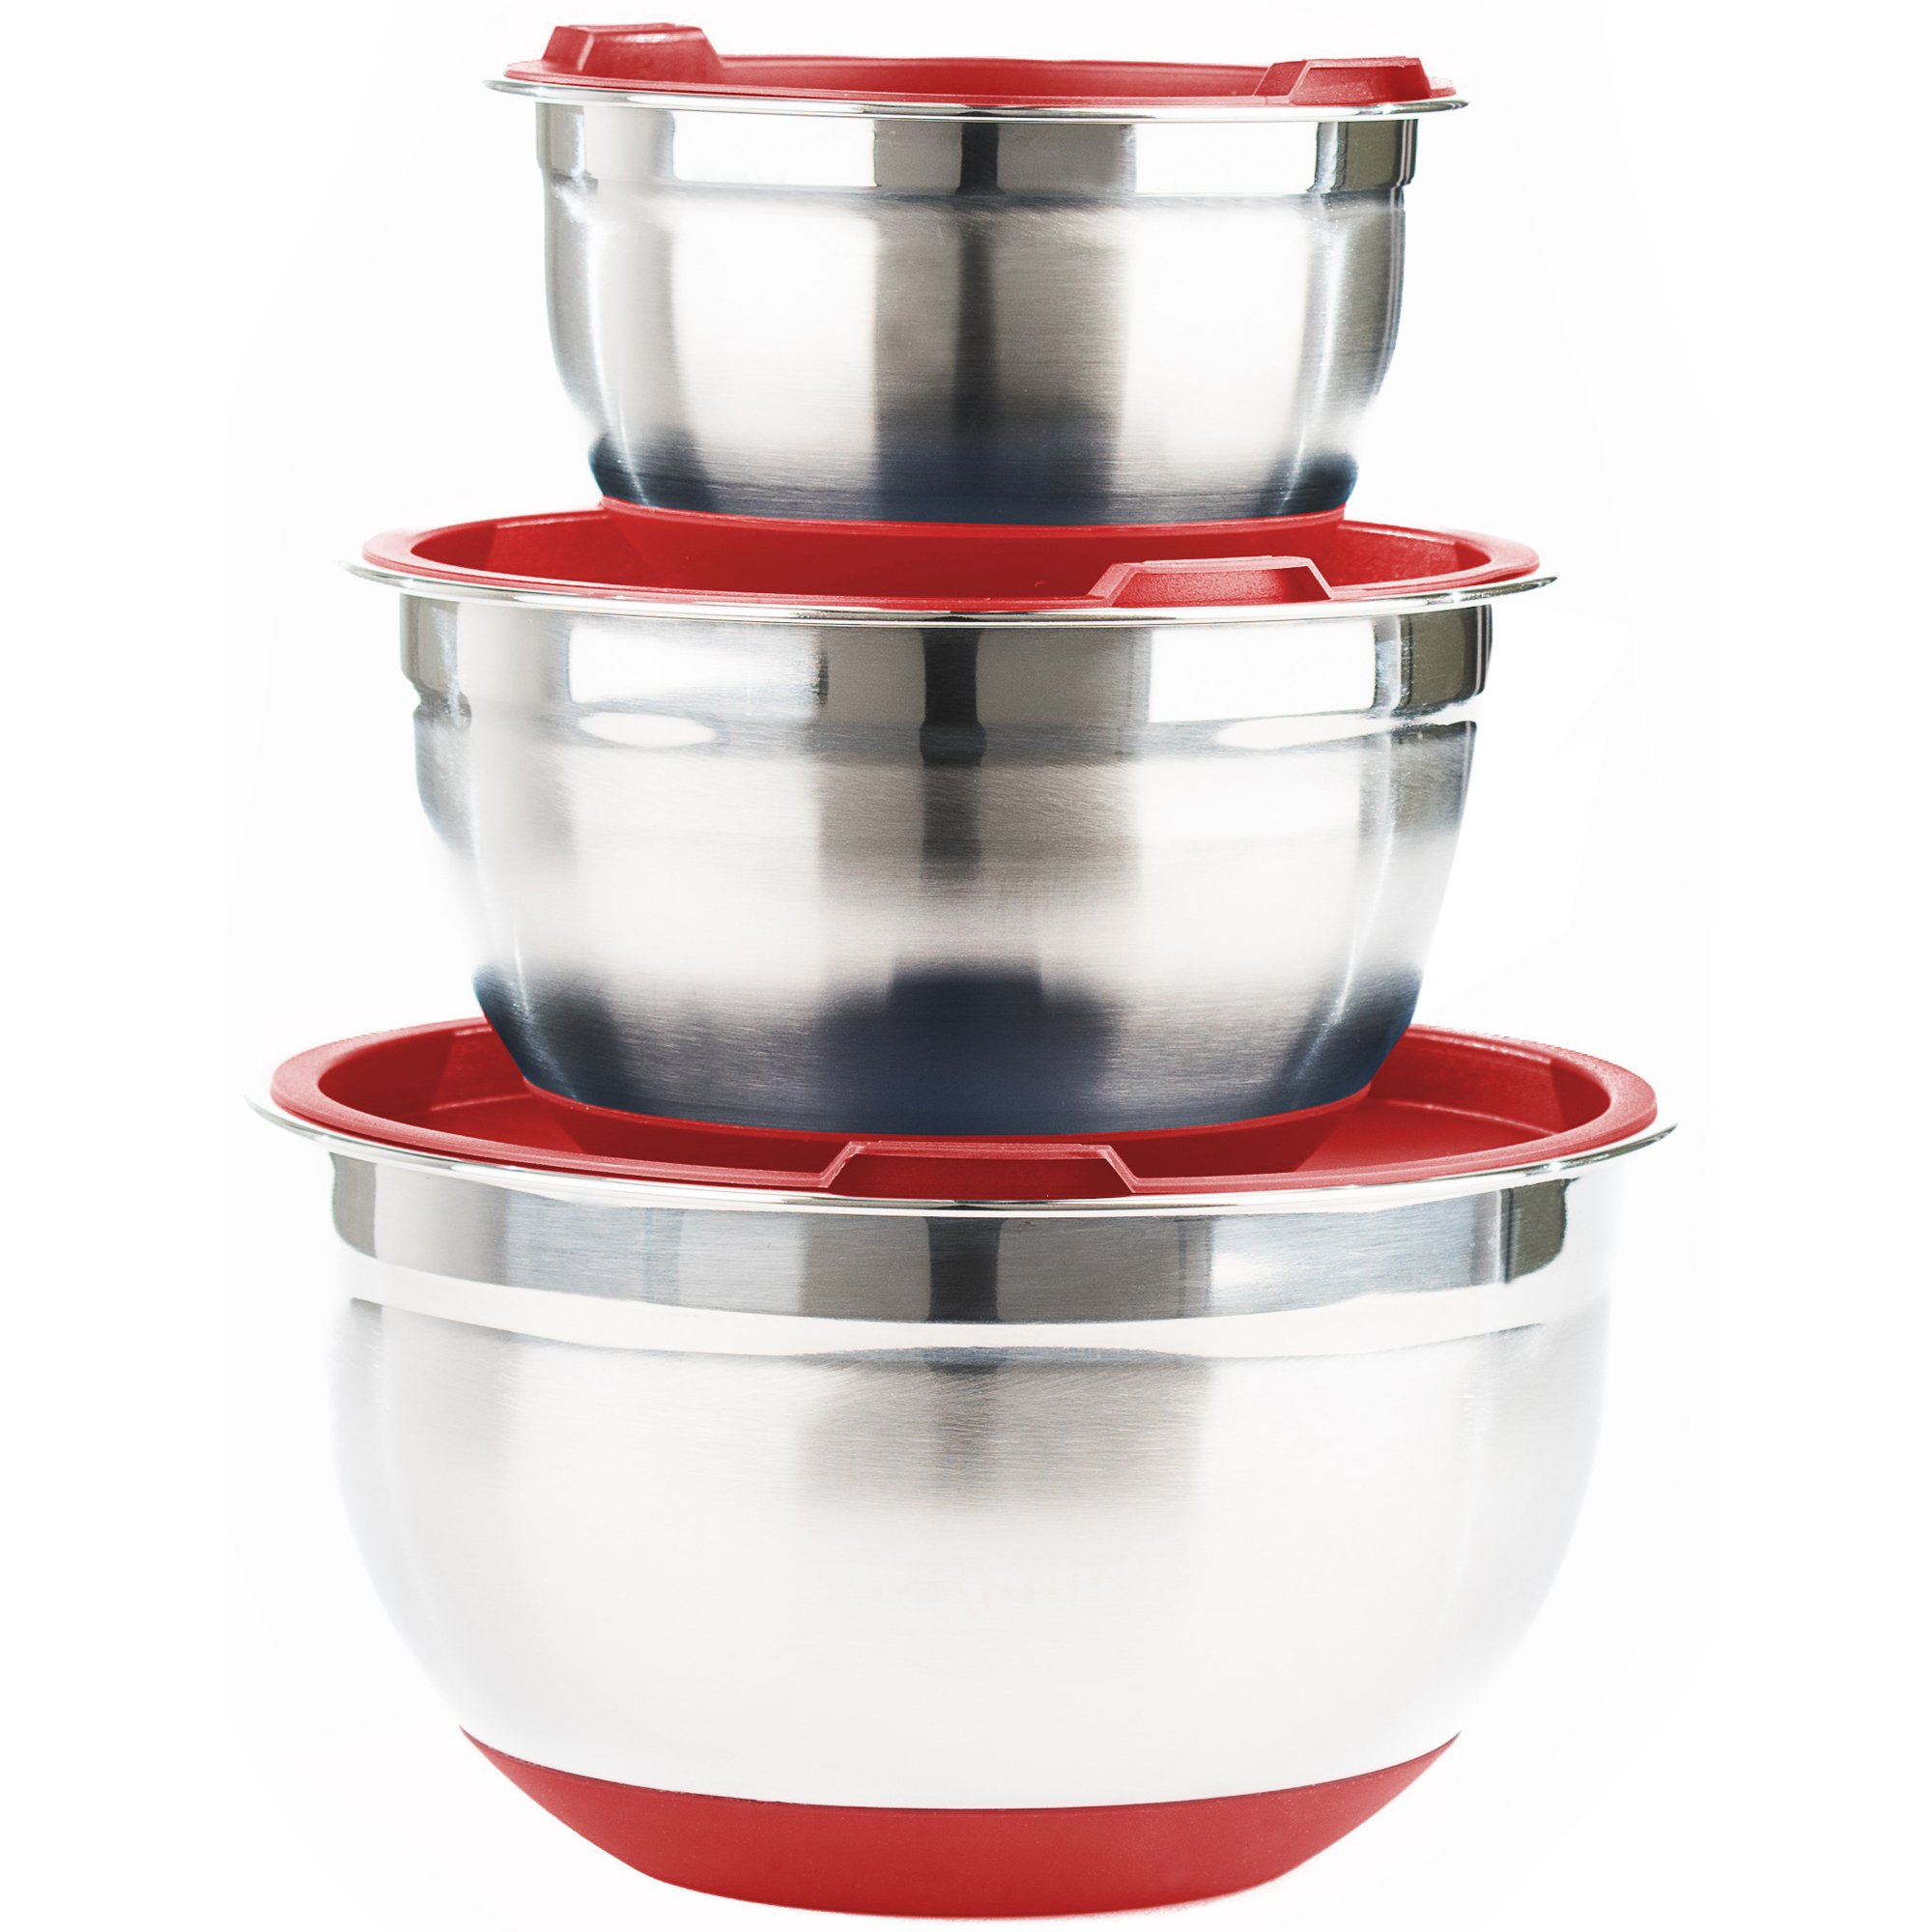 Fitzroy and Fox Non-Slip Stainless Steel Mixing Bowls with Lids, Set of 3, Red